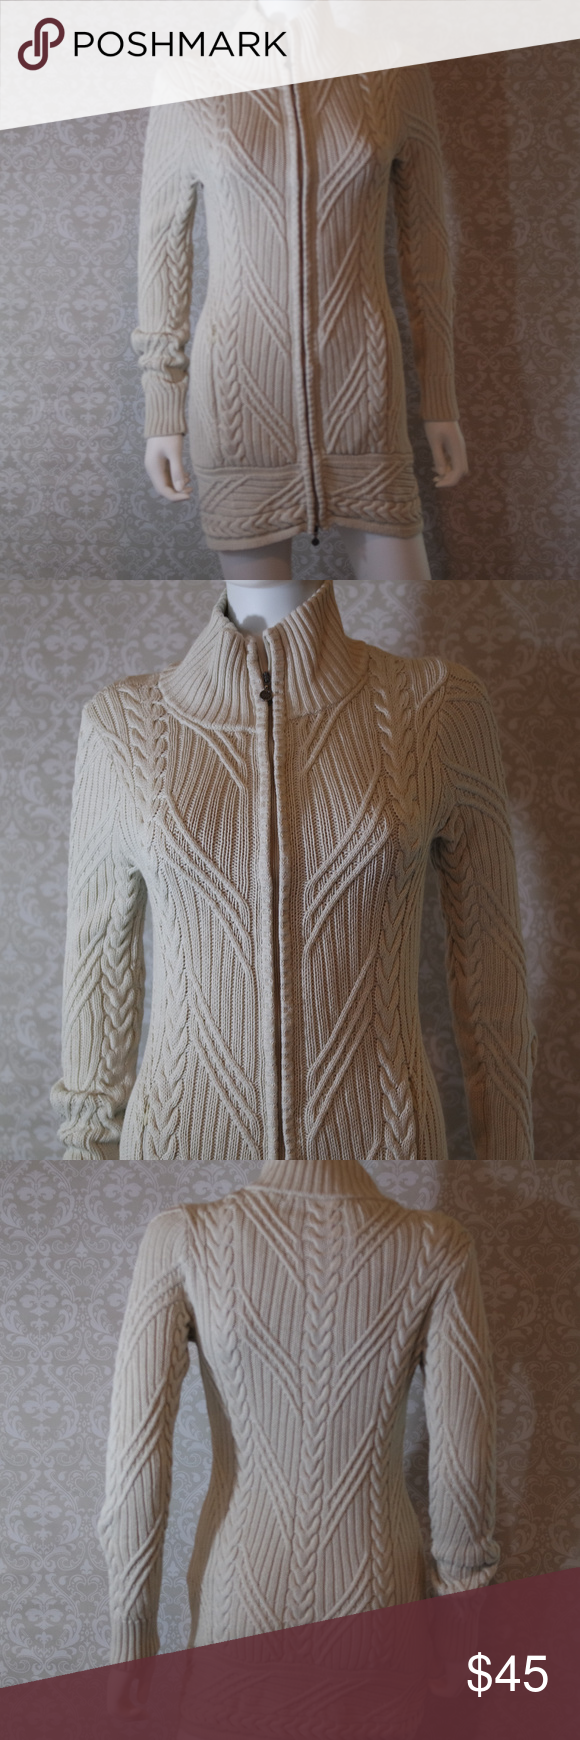 Athleta Cream Sweater Dress  Size S Stunning yet comfortable cream ribbed sweater dress with zip front.  Athleta.  Size S.  Like new condition.   Bundle the items you like and I will send you my best offer.  Thank you for shopping my closet.  :0)  (E) Athleta Dresses